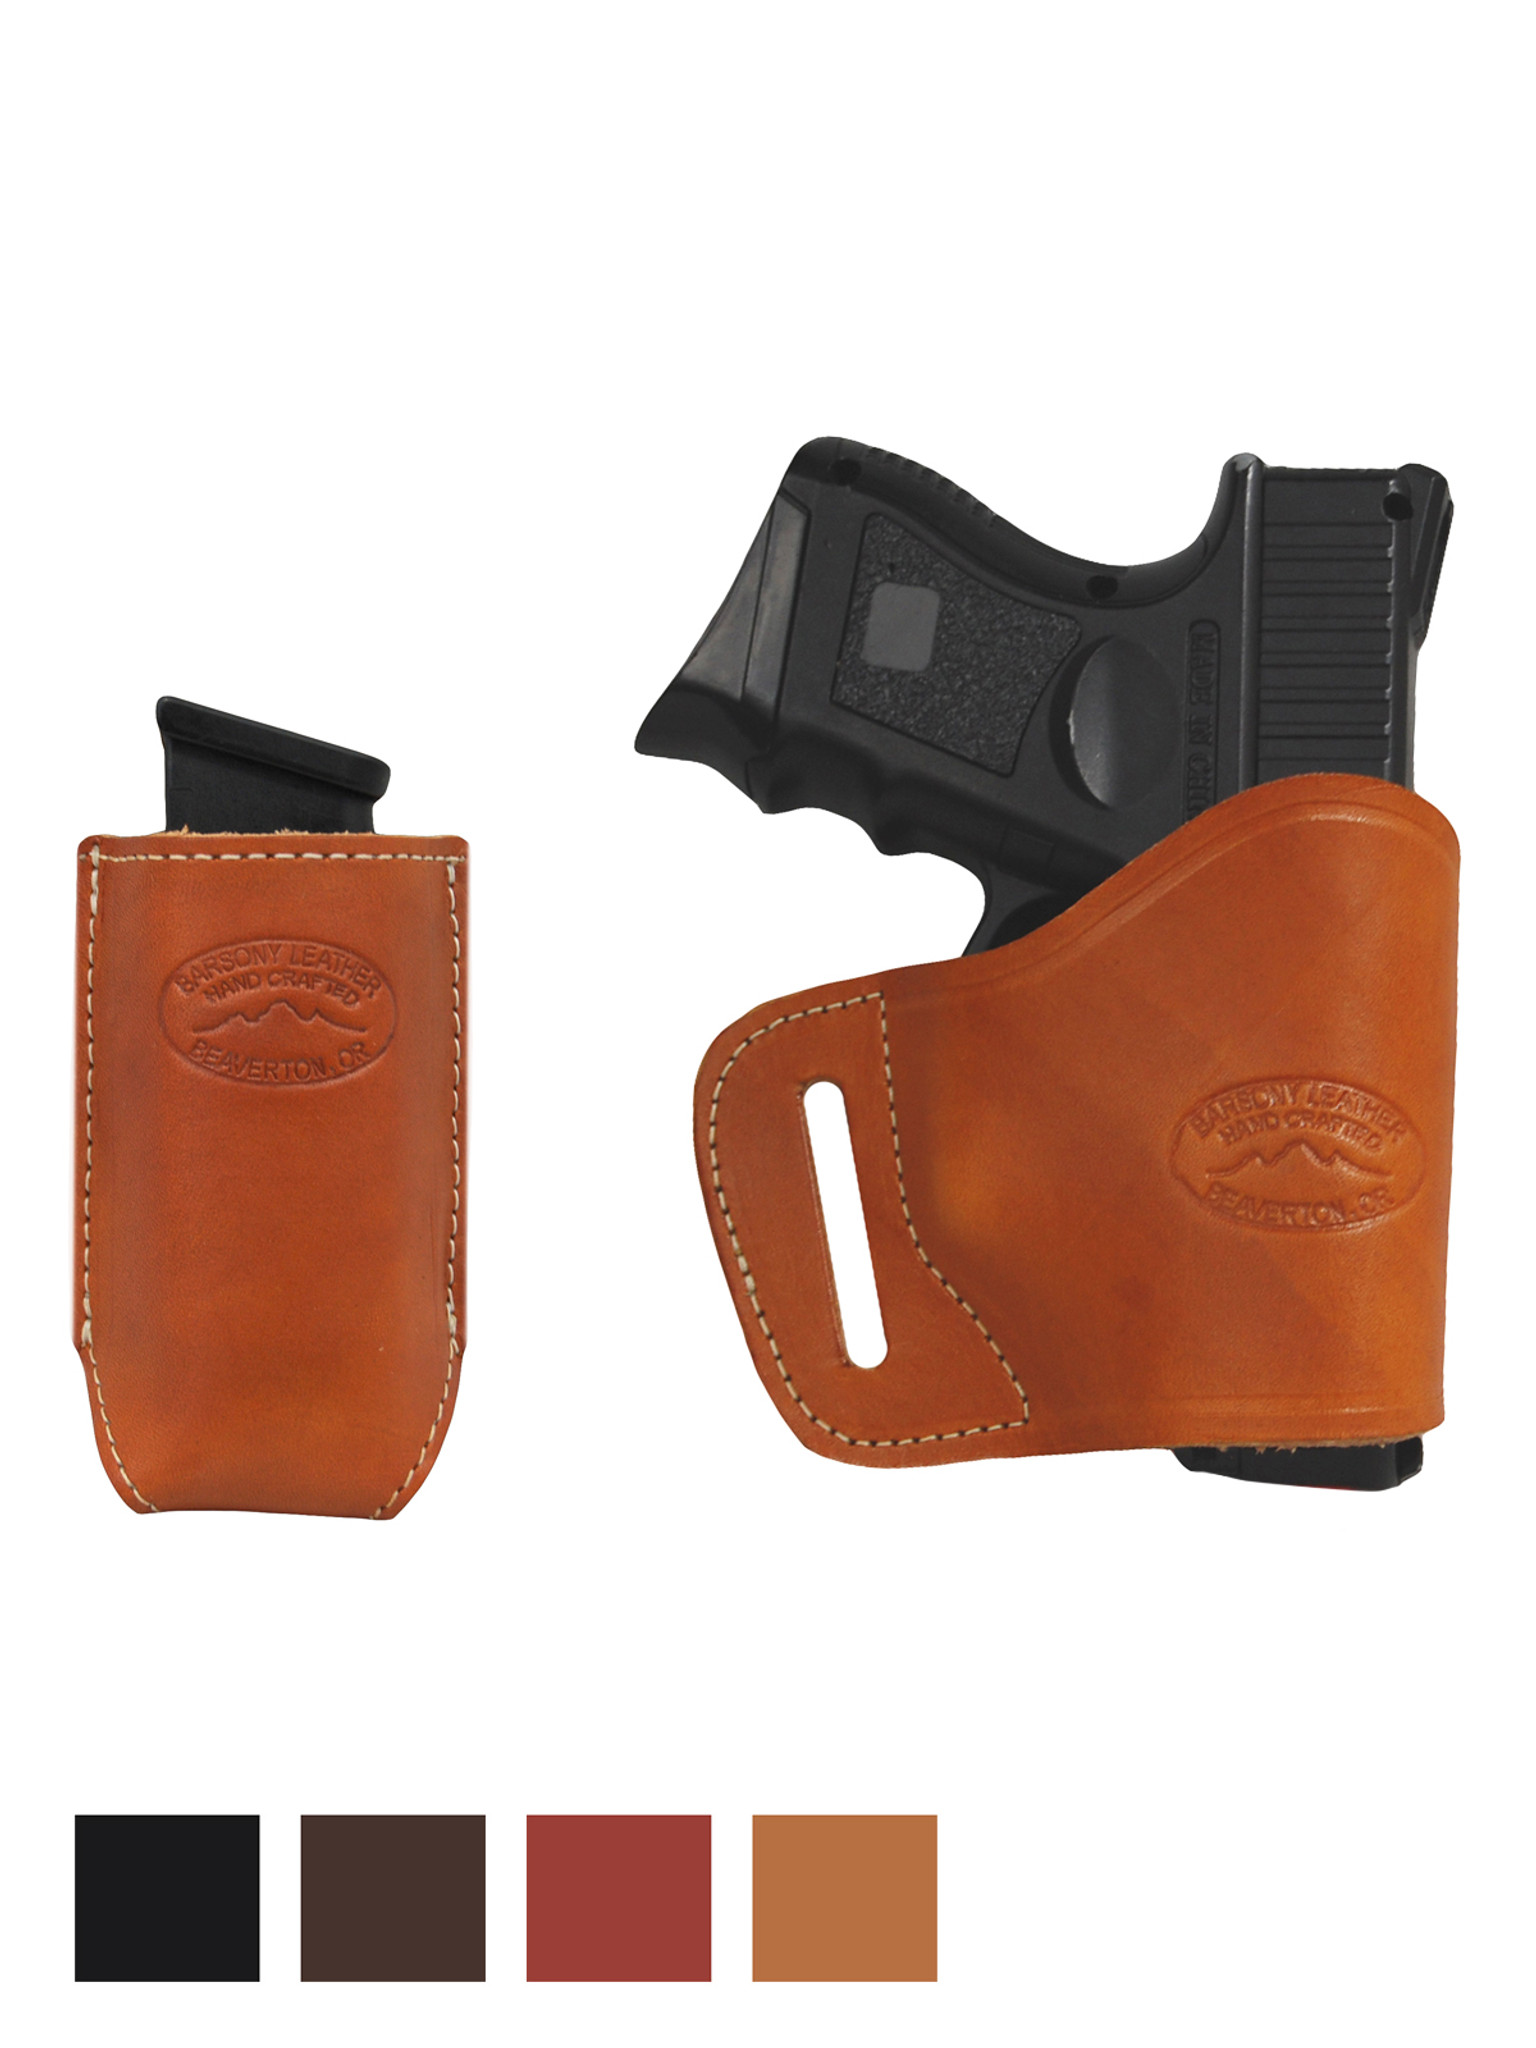 NEW Barsony Tan Leather Double Magazine Pouch for CZ EAA Compact 9mm 40 45